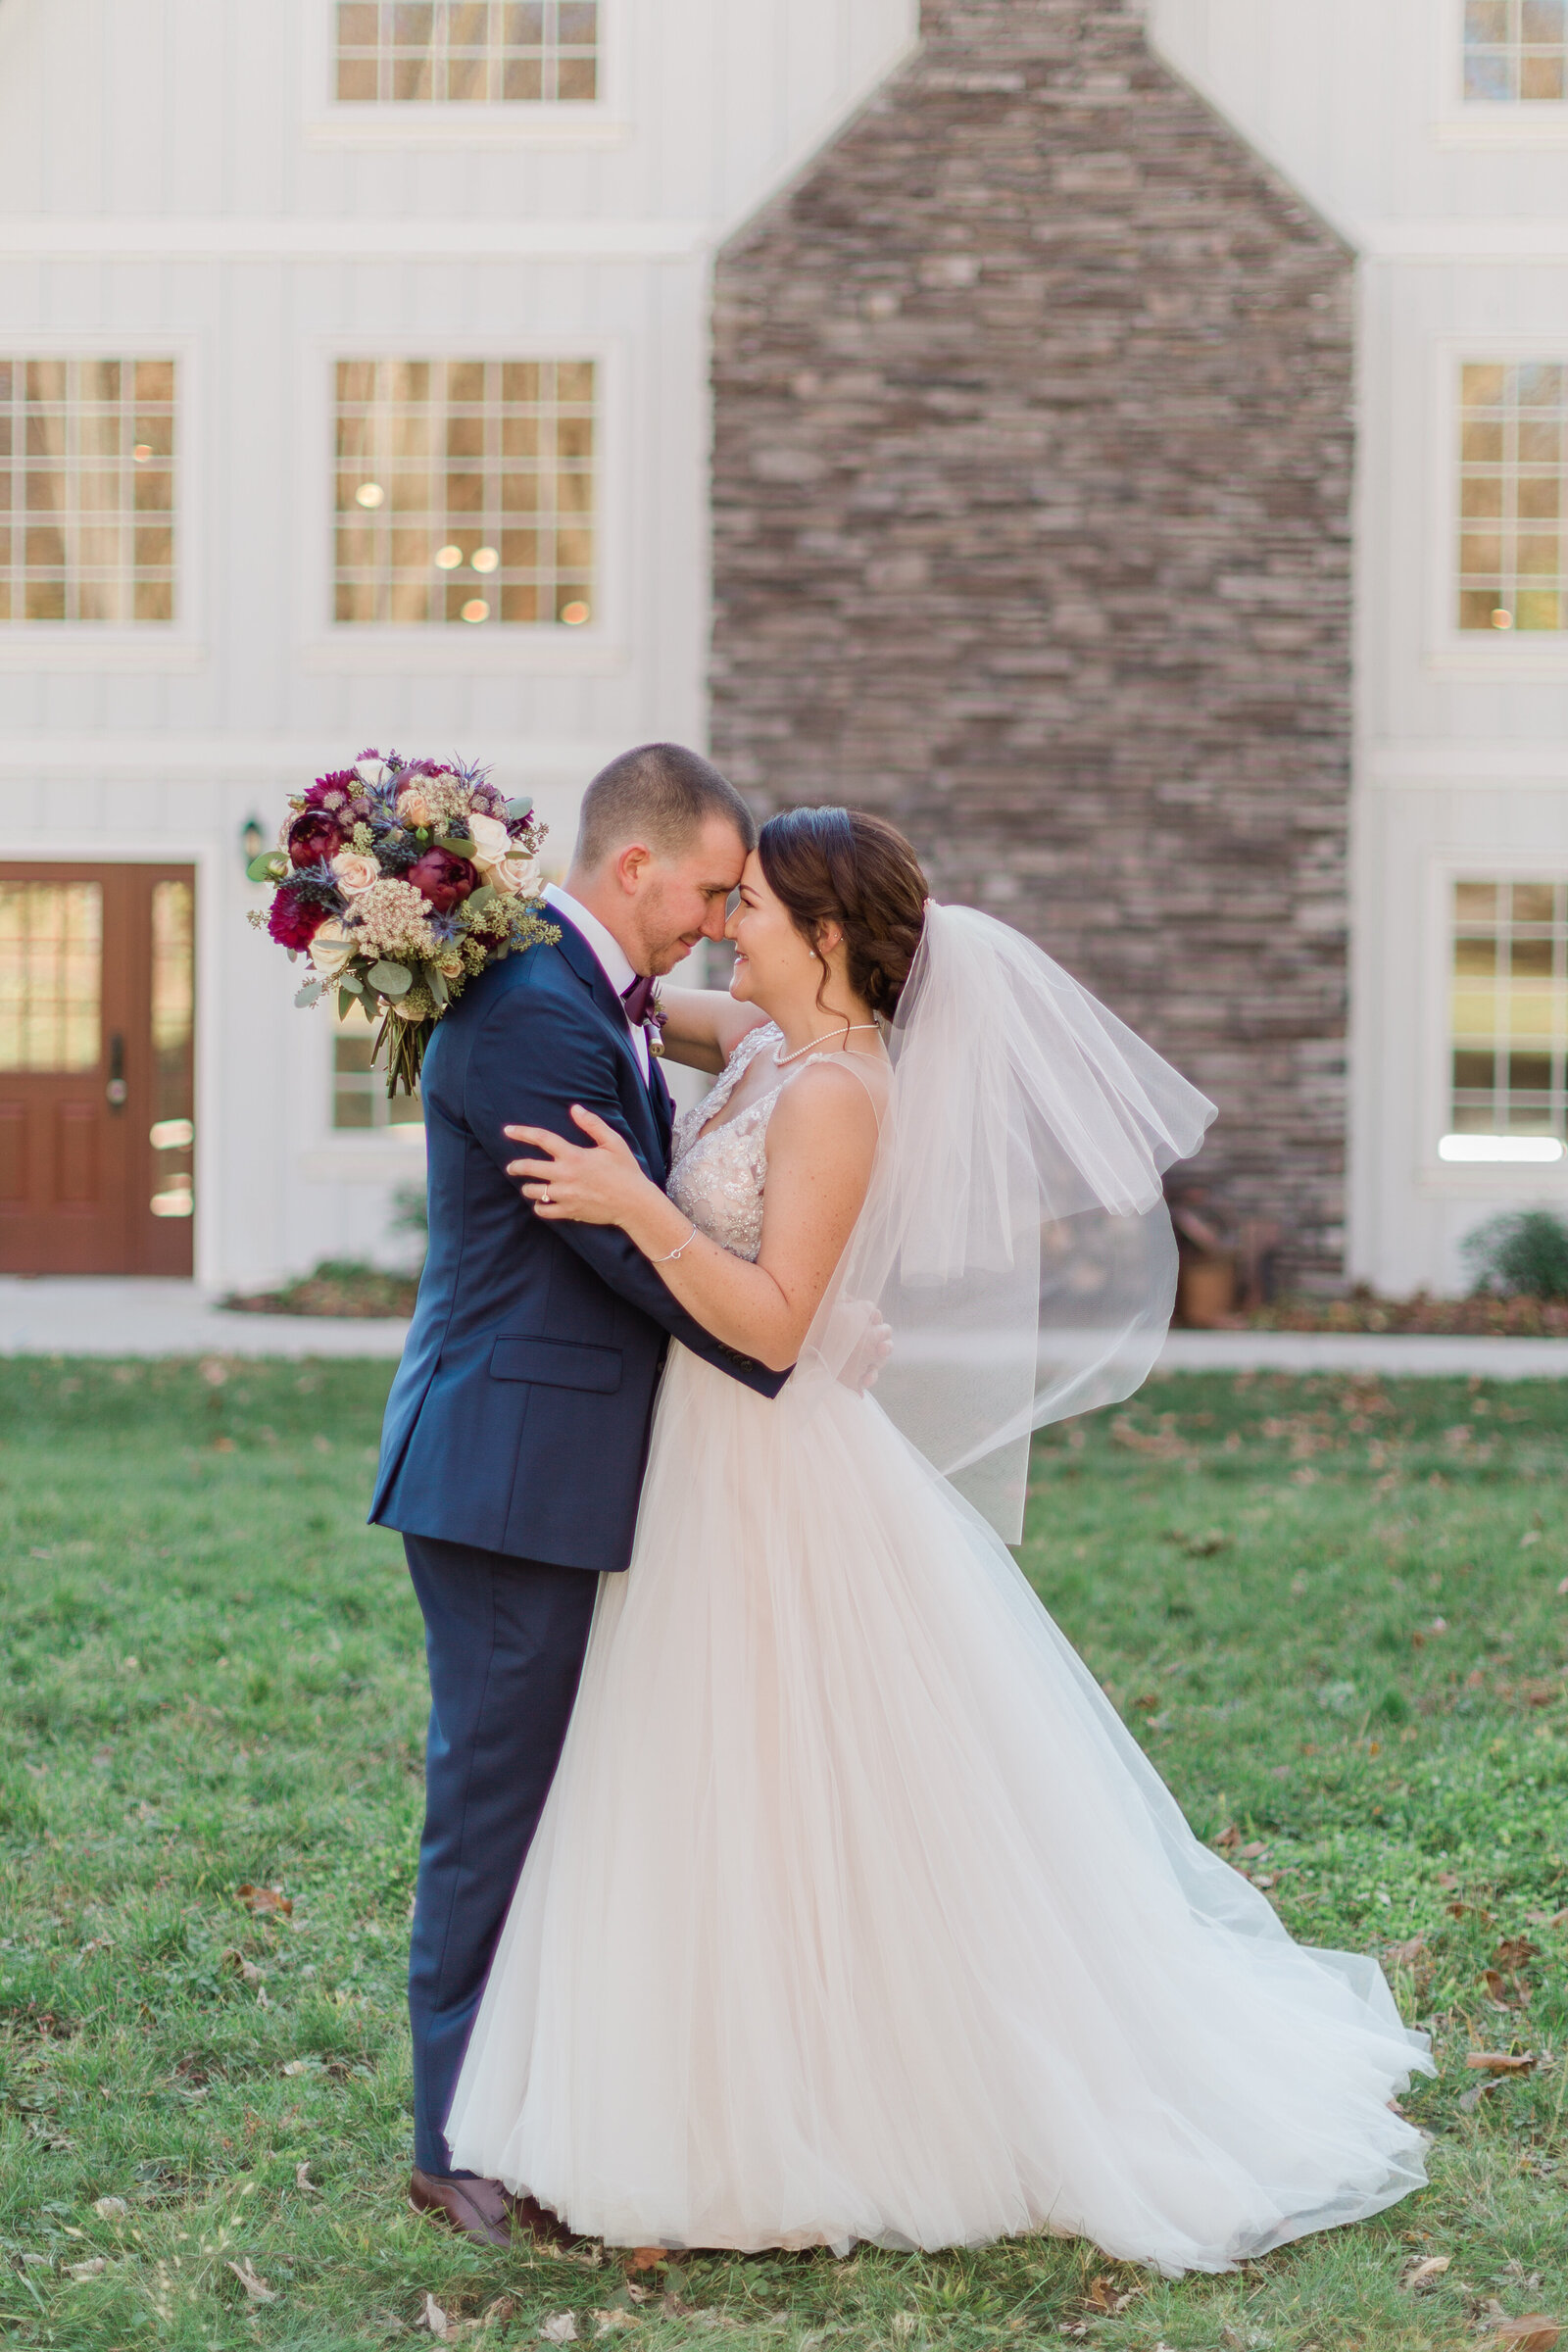 Lauren&Ryan_Wedding_Bride&GroomPortraits_RosemontManor_BerryvilleVA_11202020-7632